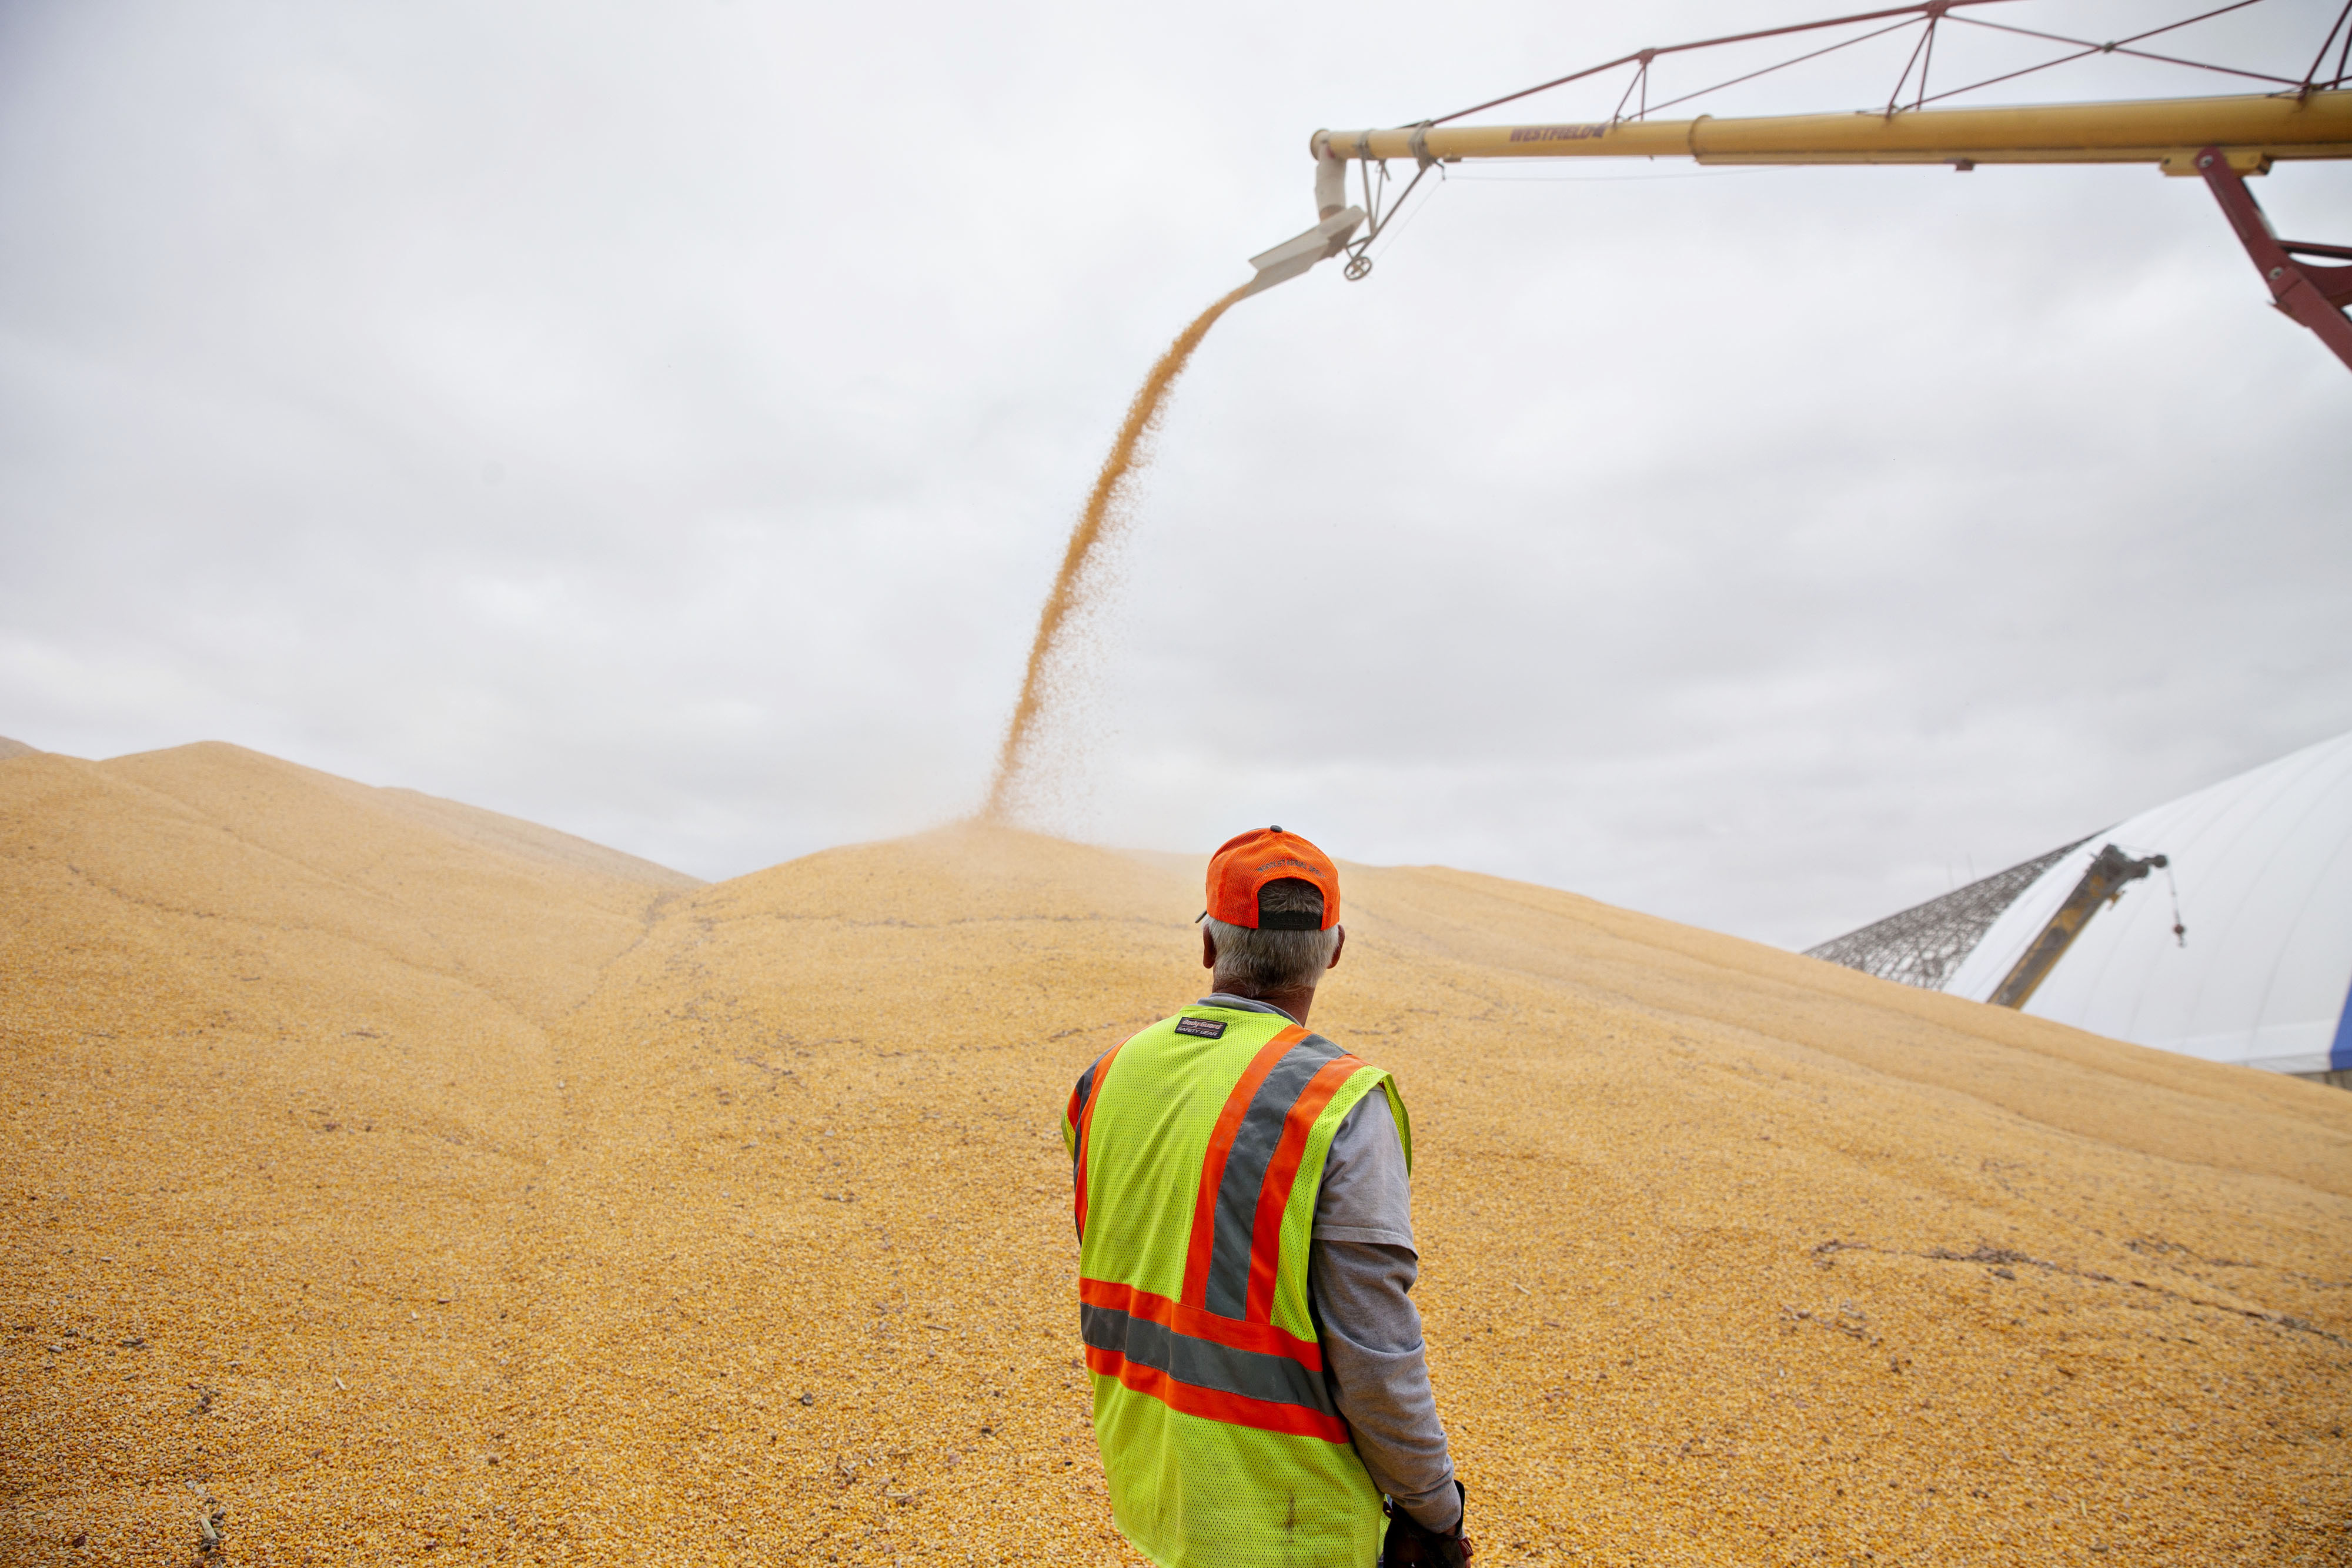 A worker monitors corn being loaded into an outdoor storage bunker at the Michlig Grain elevator in Sheffield, Ill., on Oct. 2, 2018. MUST CREDIT: Bloomberg photo by Daniel Acker.